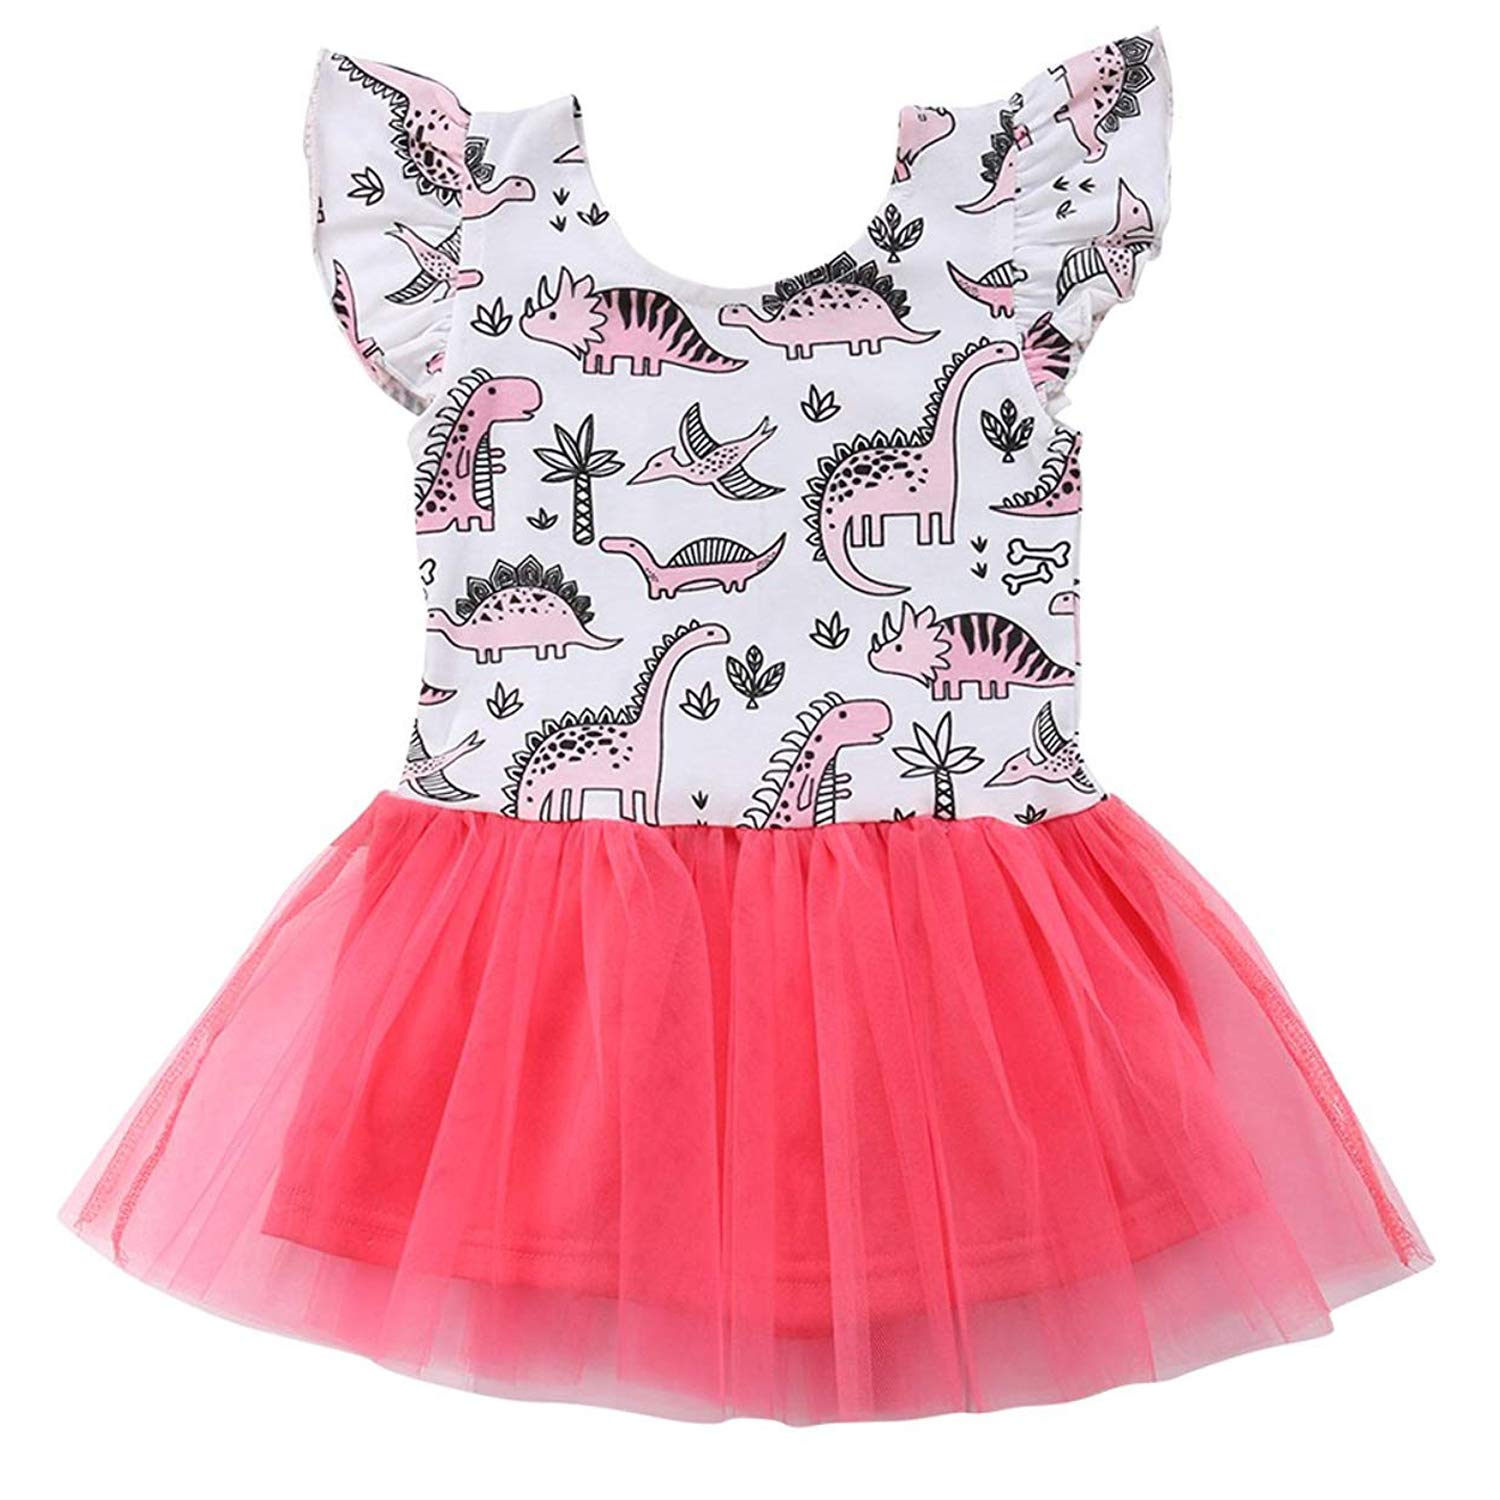 Infant Toddler Kids Baby Girls Dress Dinosaur Tulle Tutu Sleeveless Skirt Clothes Set